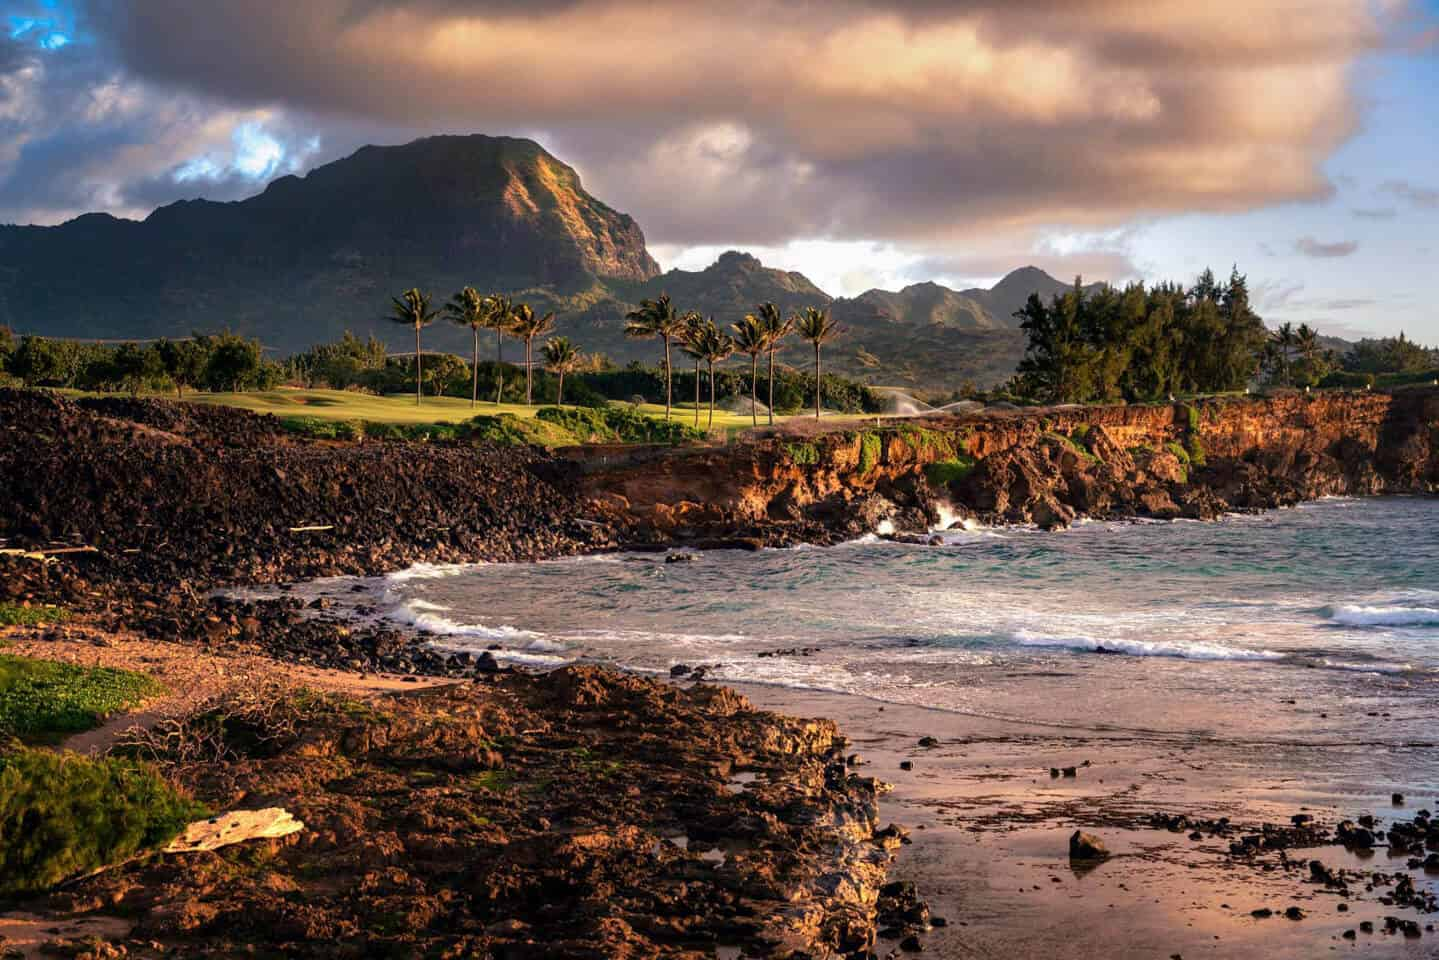 On the third day of our one week itinerary for Kauai, visit Makawehi Bluff for sunrise.